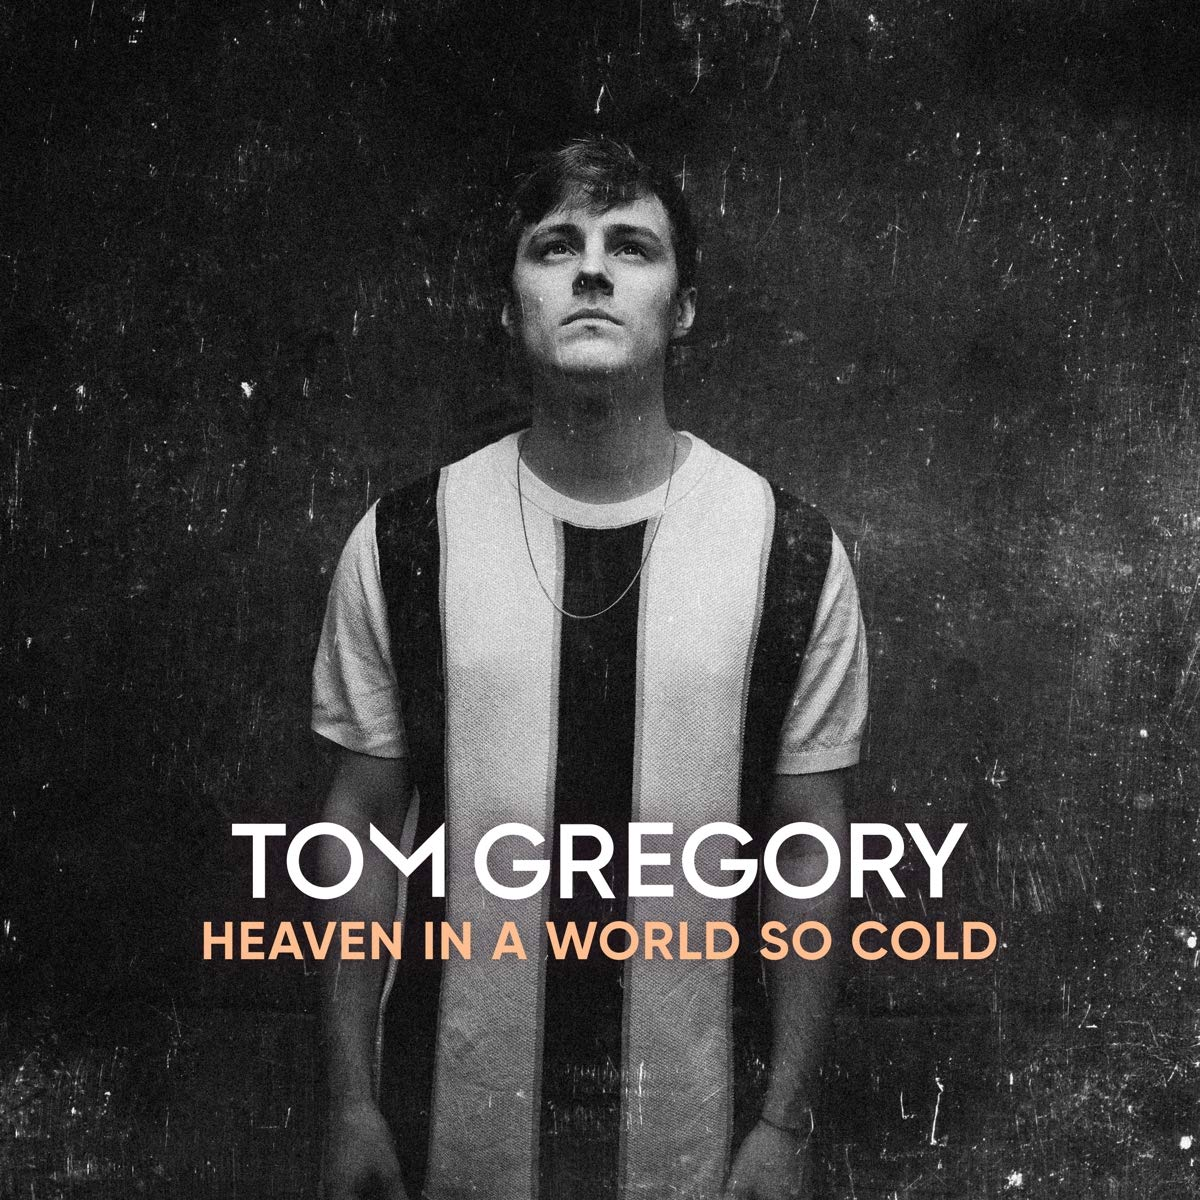 Tom Gregory HEAVEN IN A WORLD SO COLD